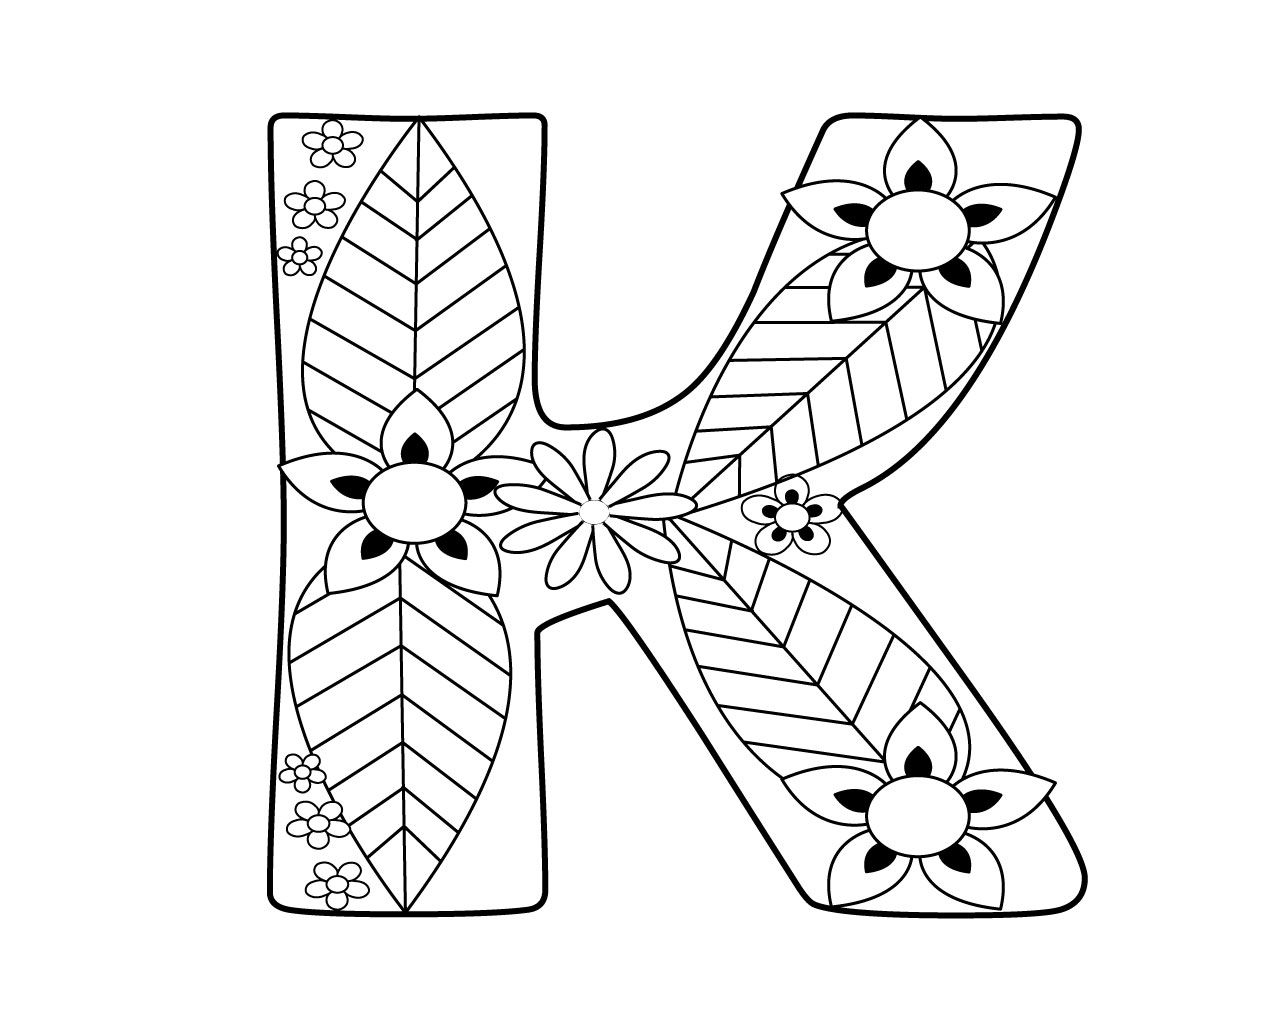 letter k coloring pages for adults totally free printable letters to teach your kiddo the pages k coloring adults for letter